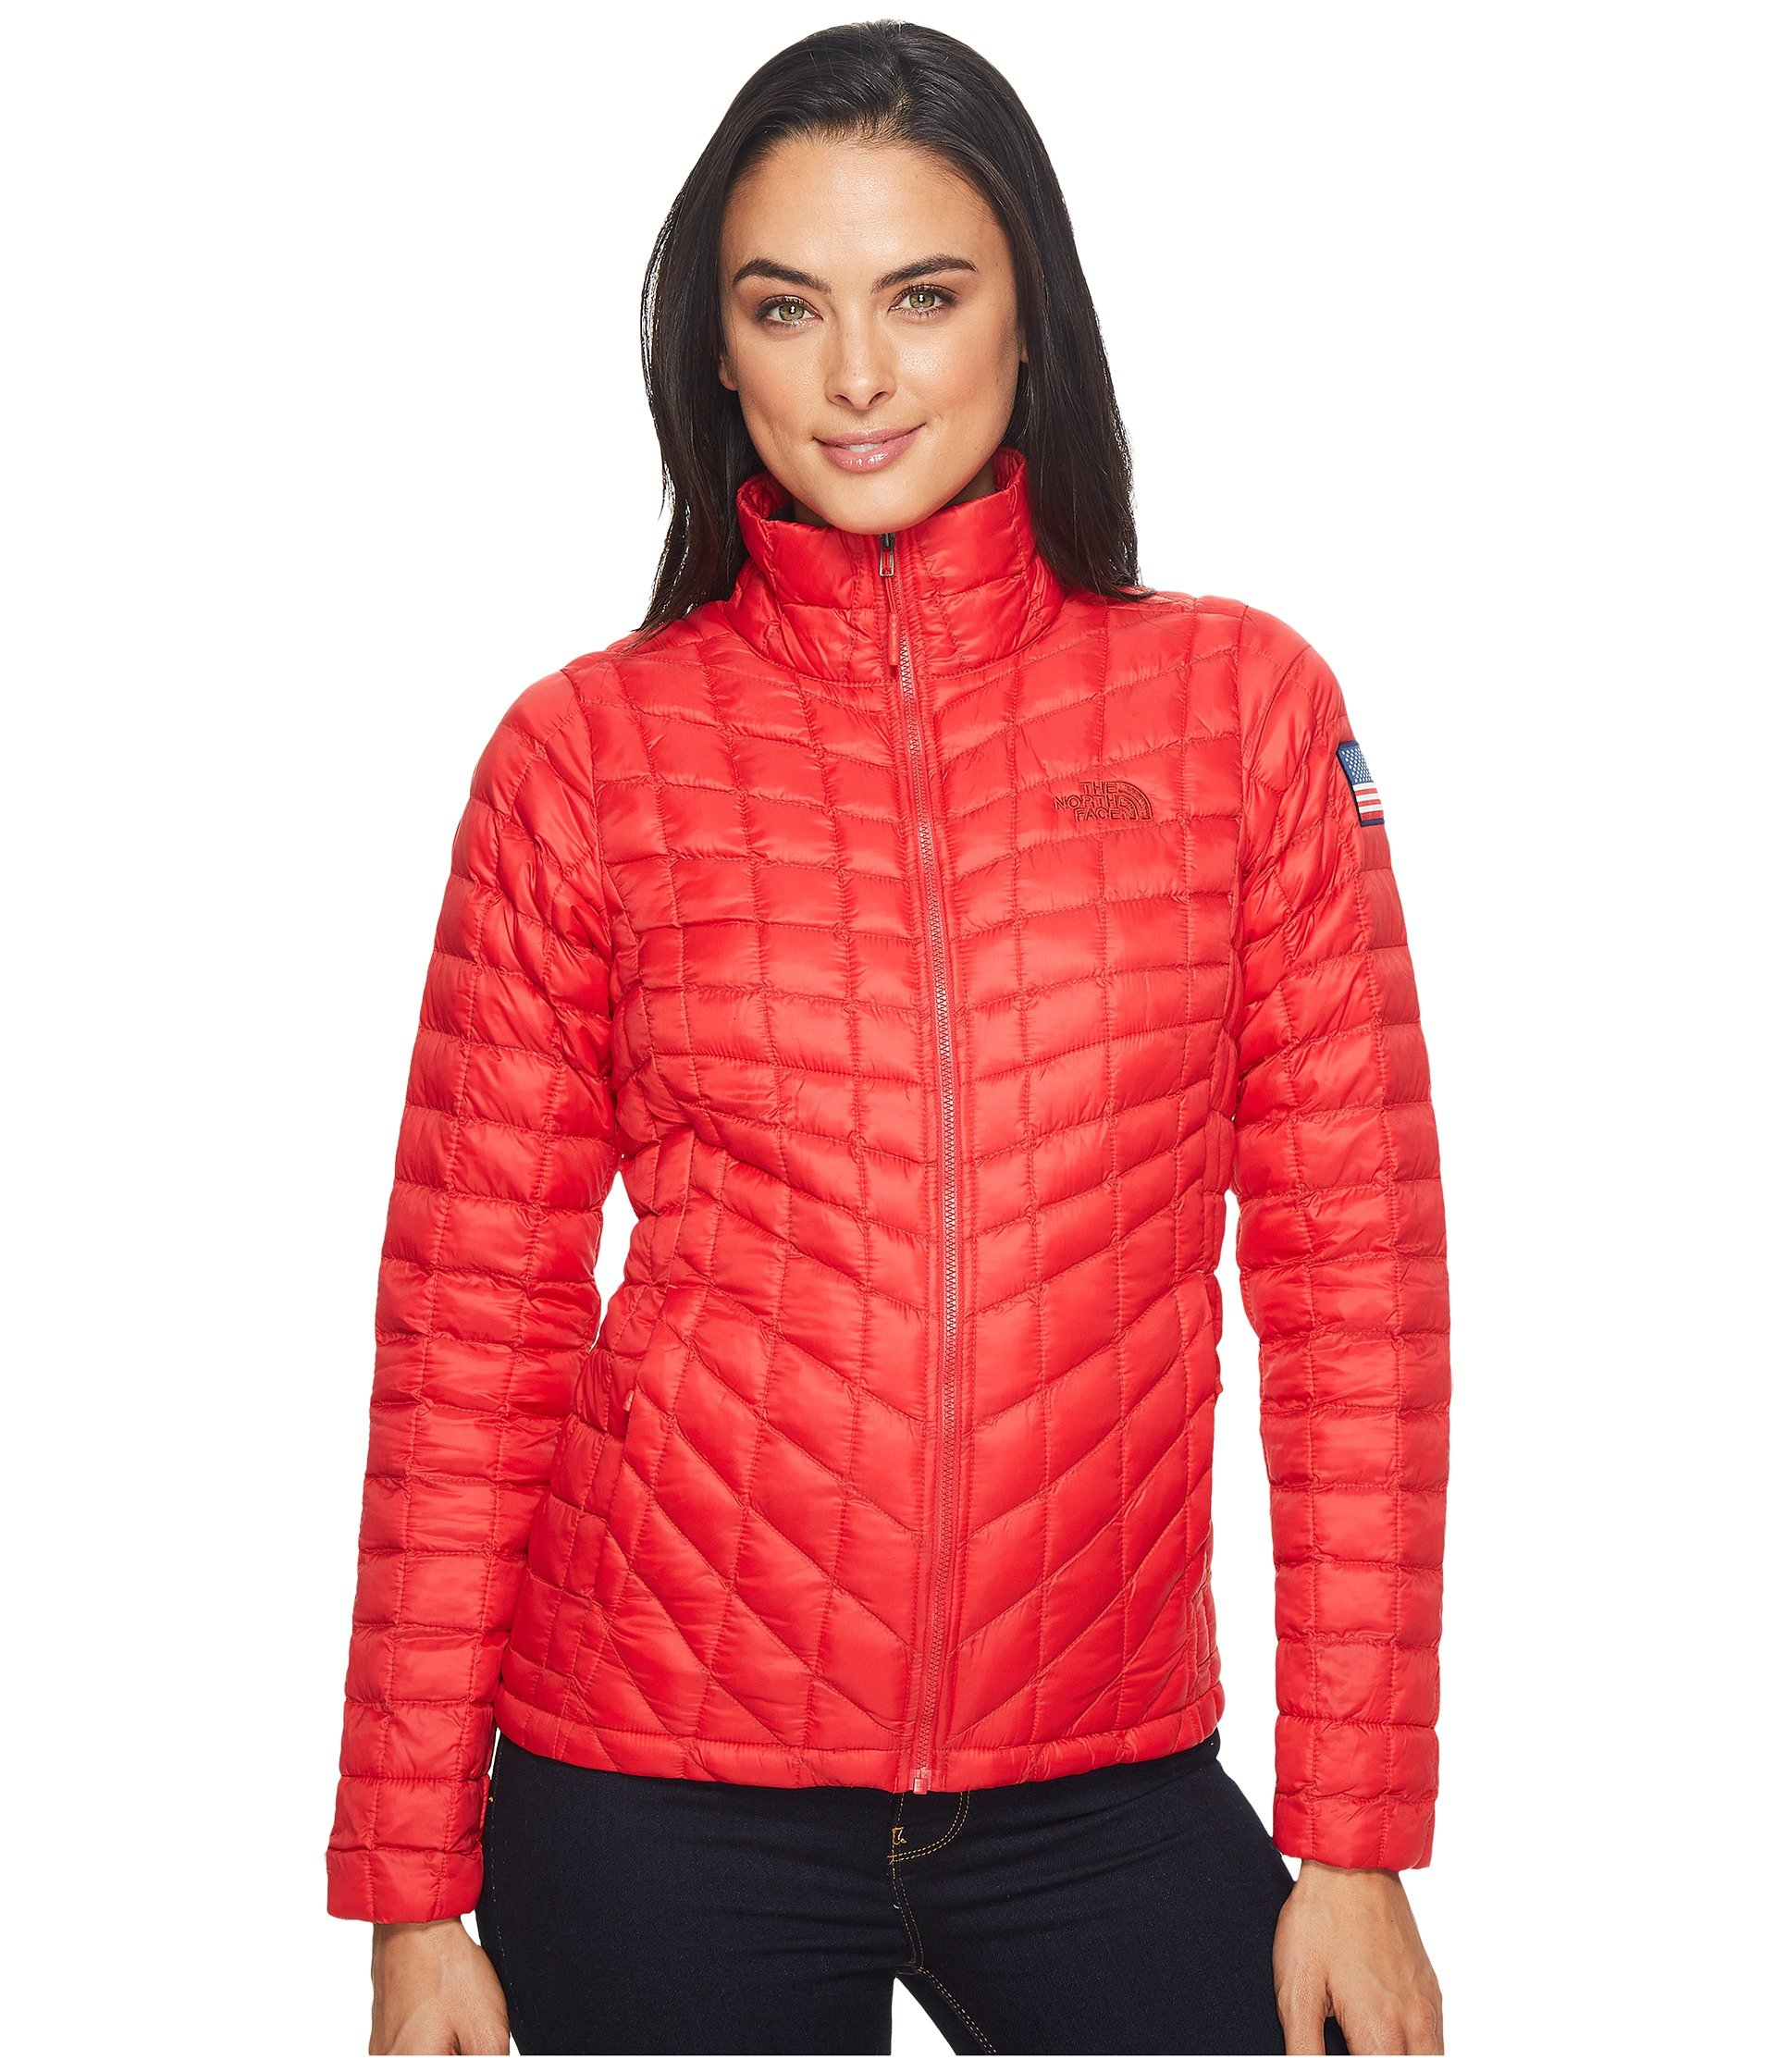 North Face Ic Thermoball Full Zip Jacket Womens Style : A3C1P-682 Size : M